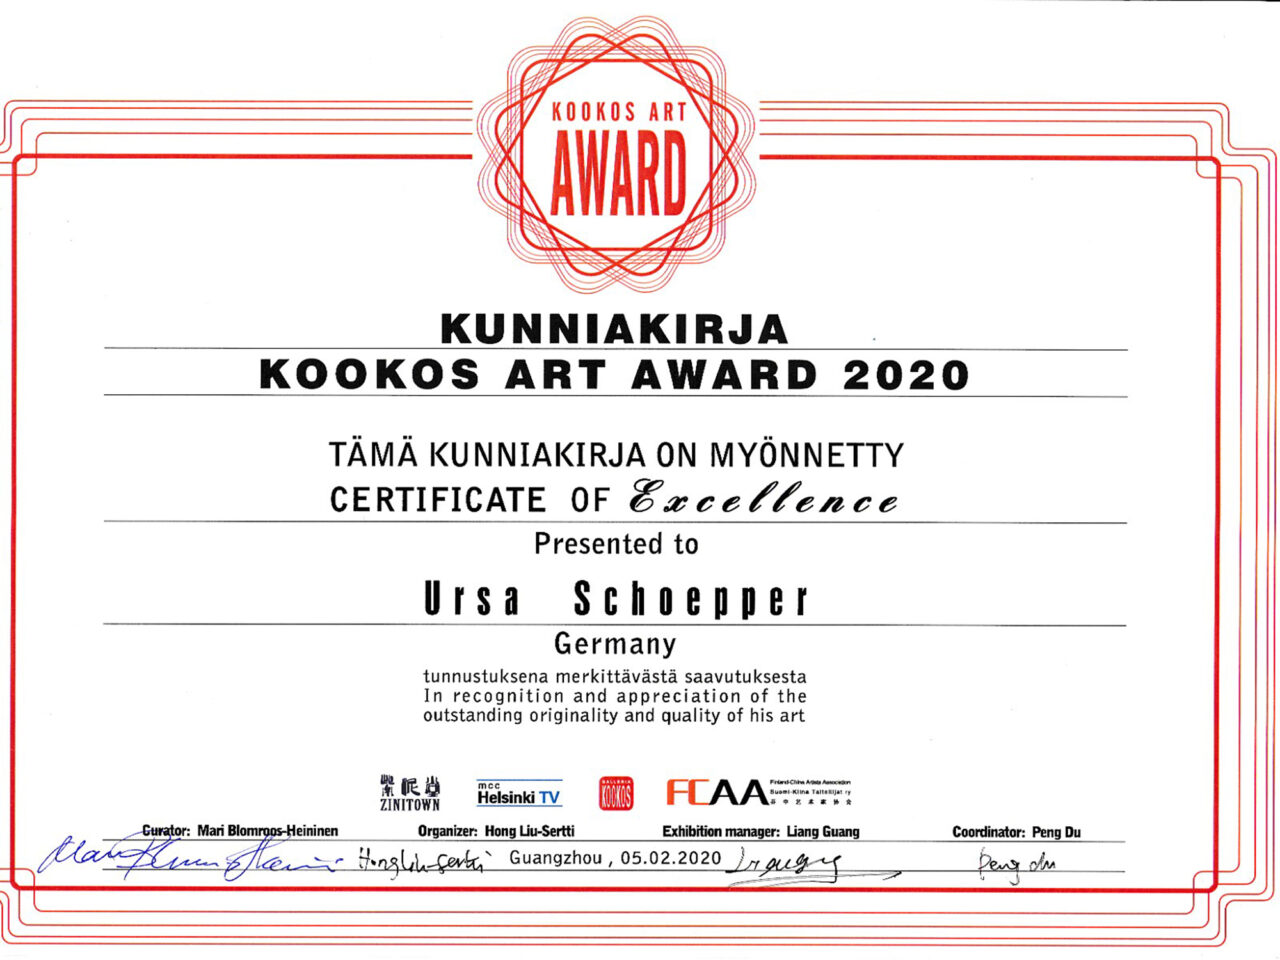 Certificate of Excellence image